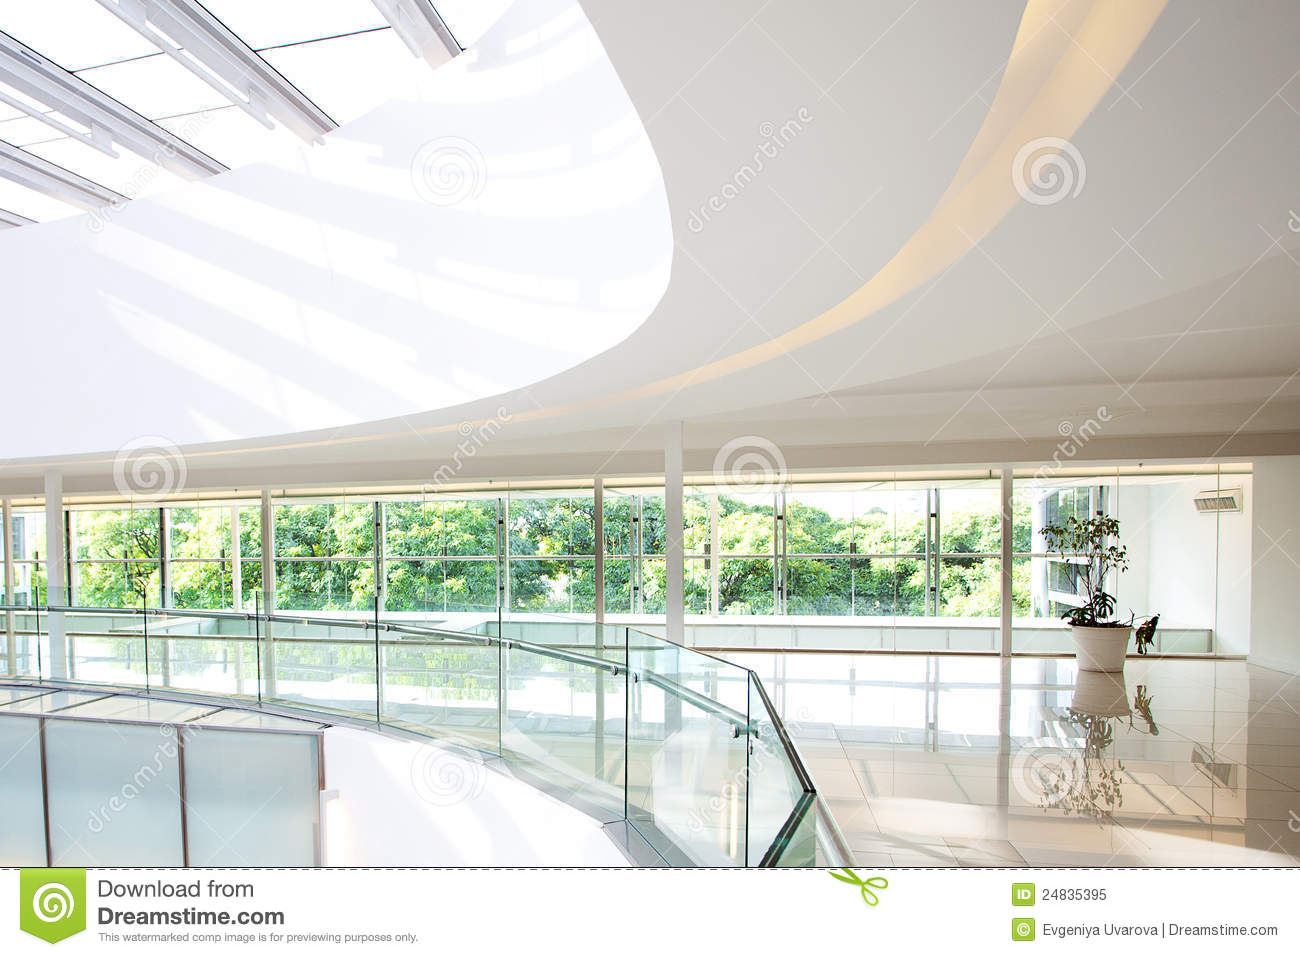 Interior of a modern office building royalty free stock for Modern office building interior